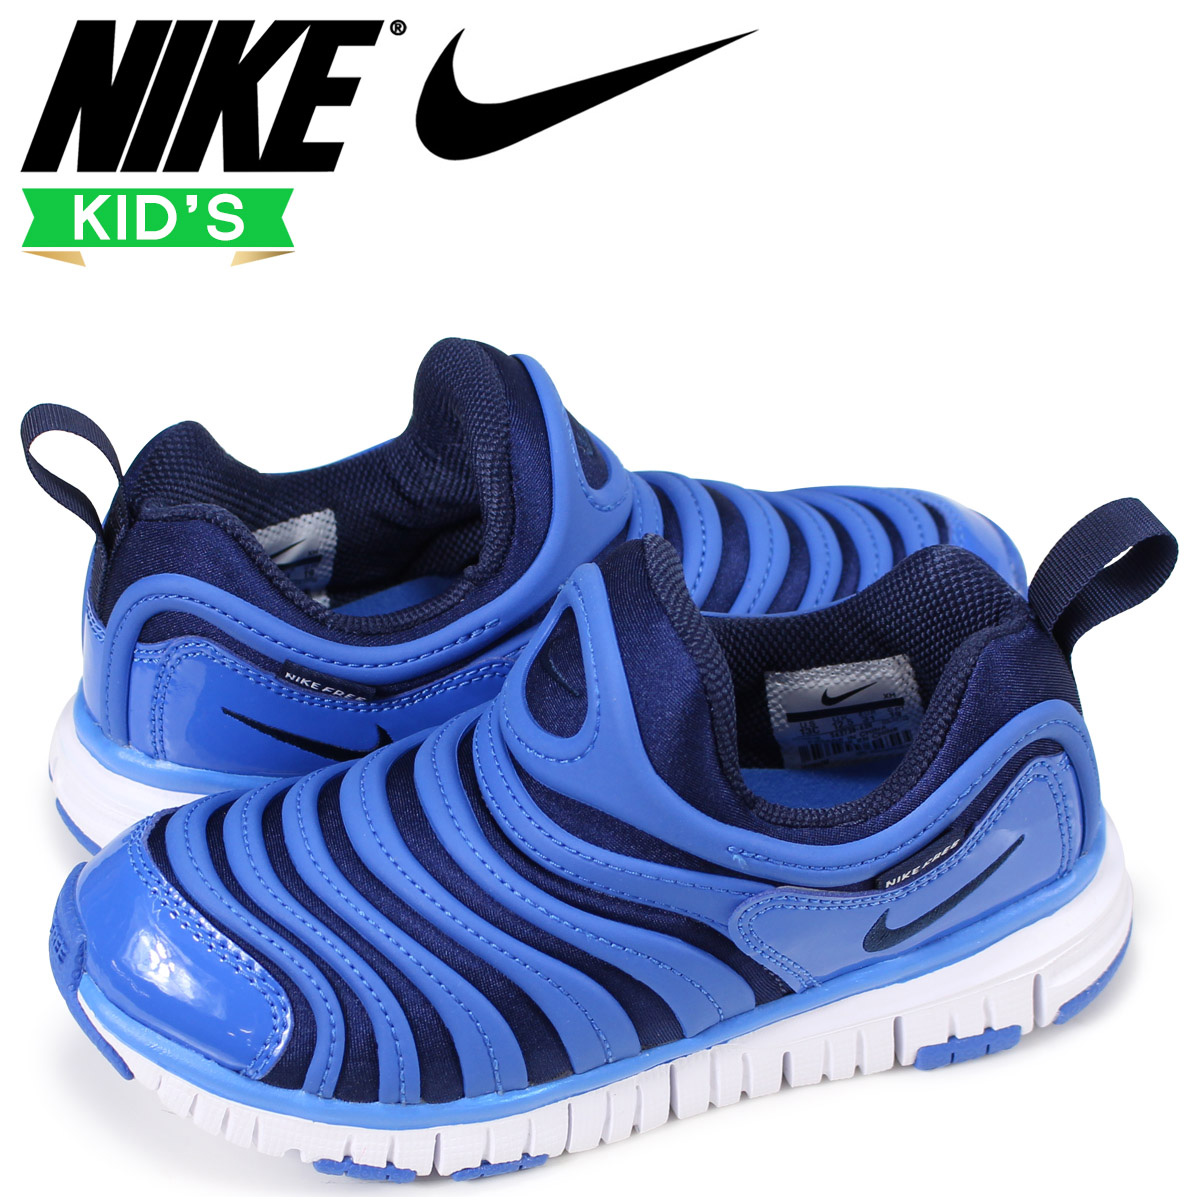 sneak online shop nike nike dynamo free kids sneakers dynamo free ps 343 738 426 blue load. Black Bedroom Furniture Sets. Home Design Ideas